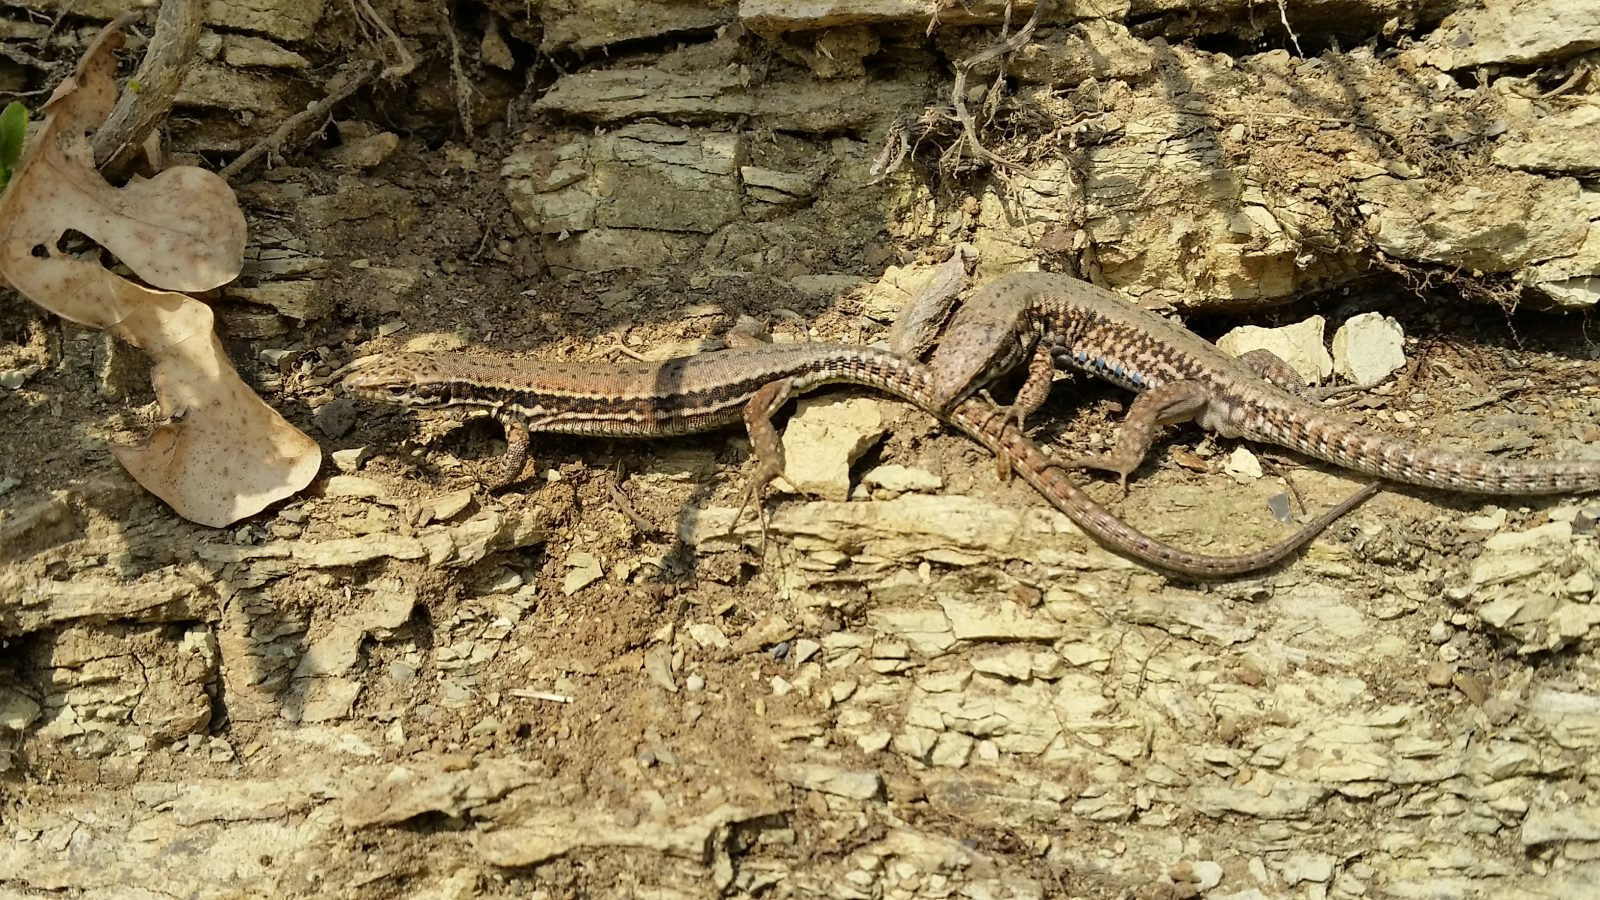 Lizards mating in spring